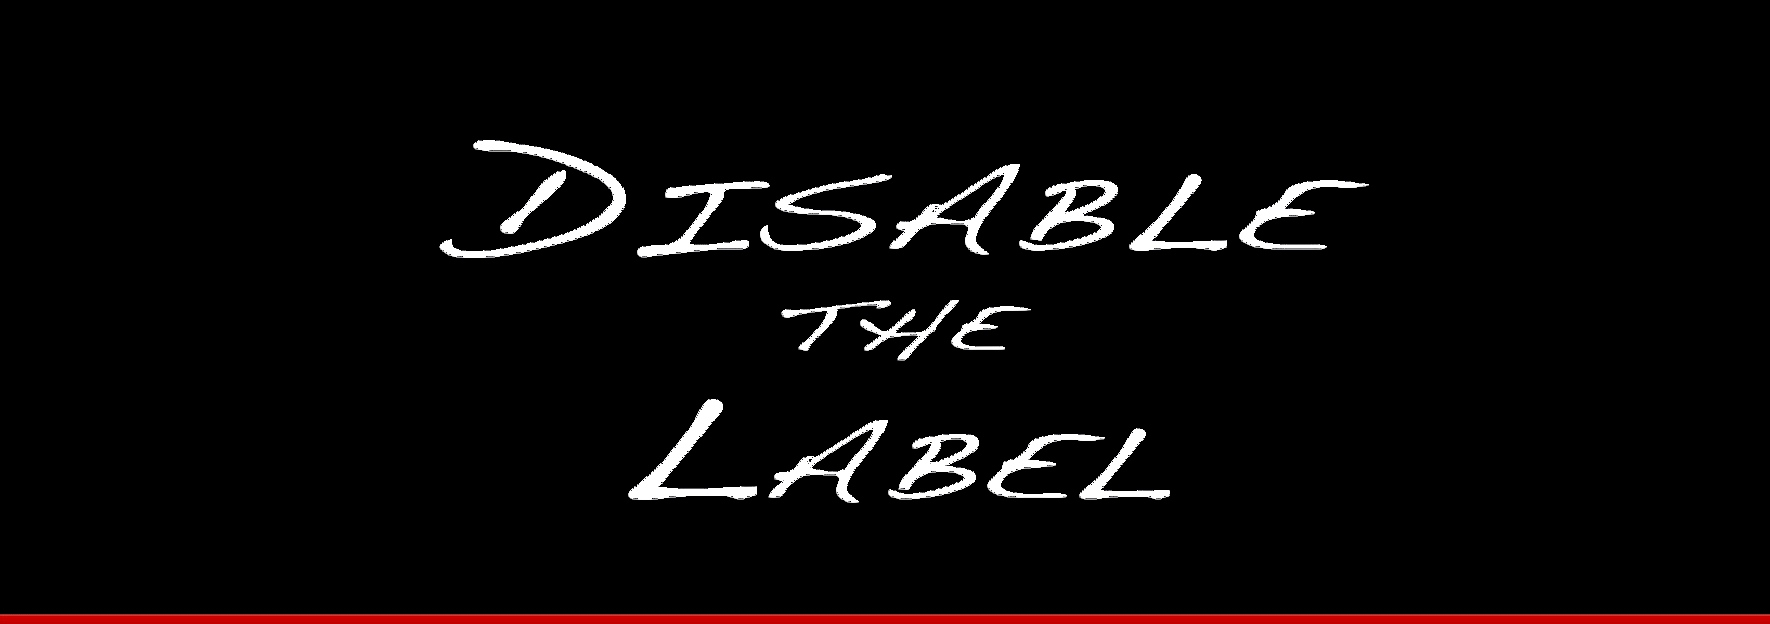 Motivational speaker Derek Clark's new book Disable The Label - Never Limit The Potential of a Child